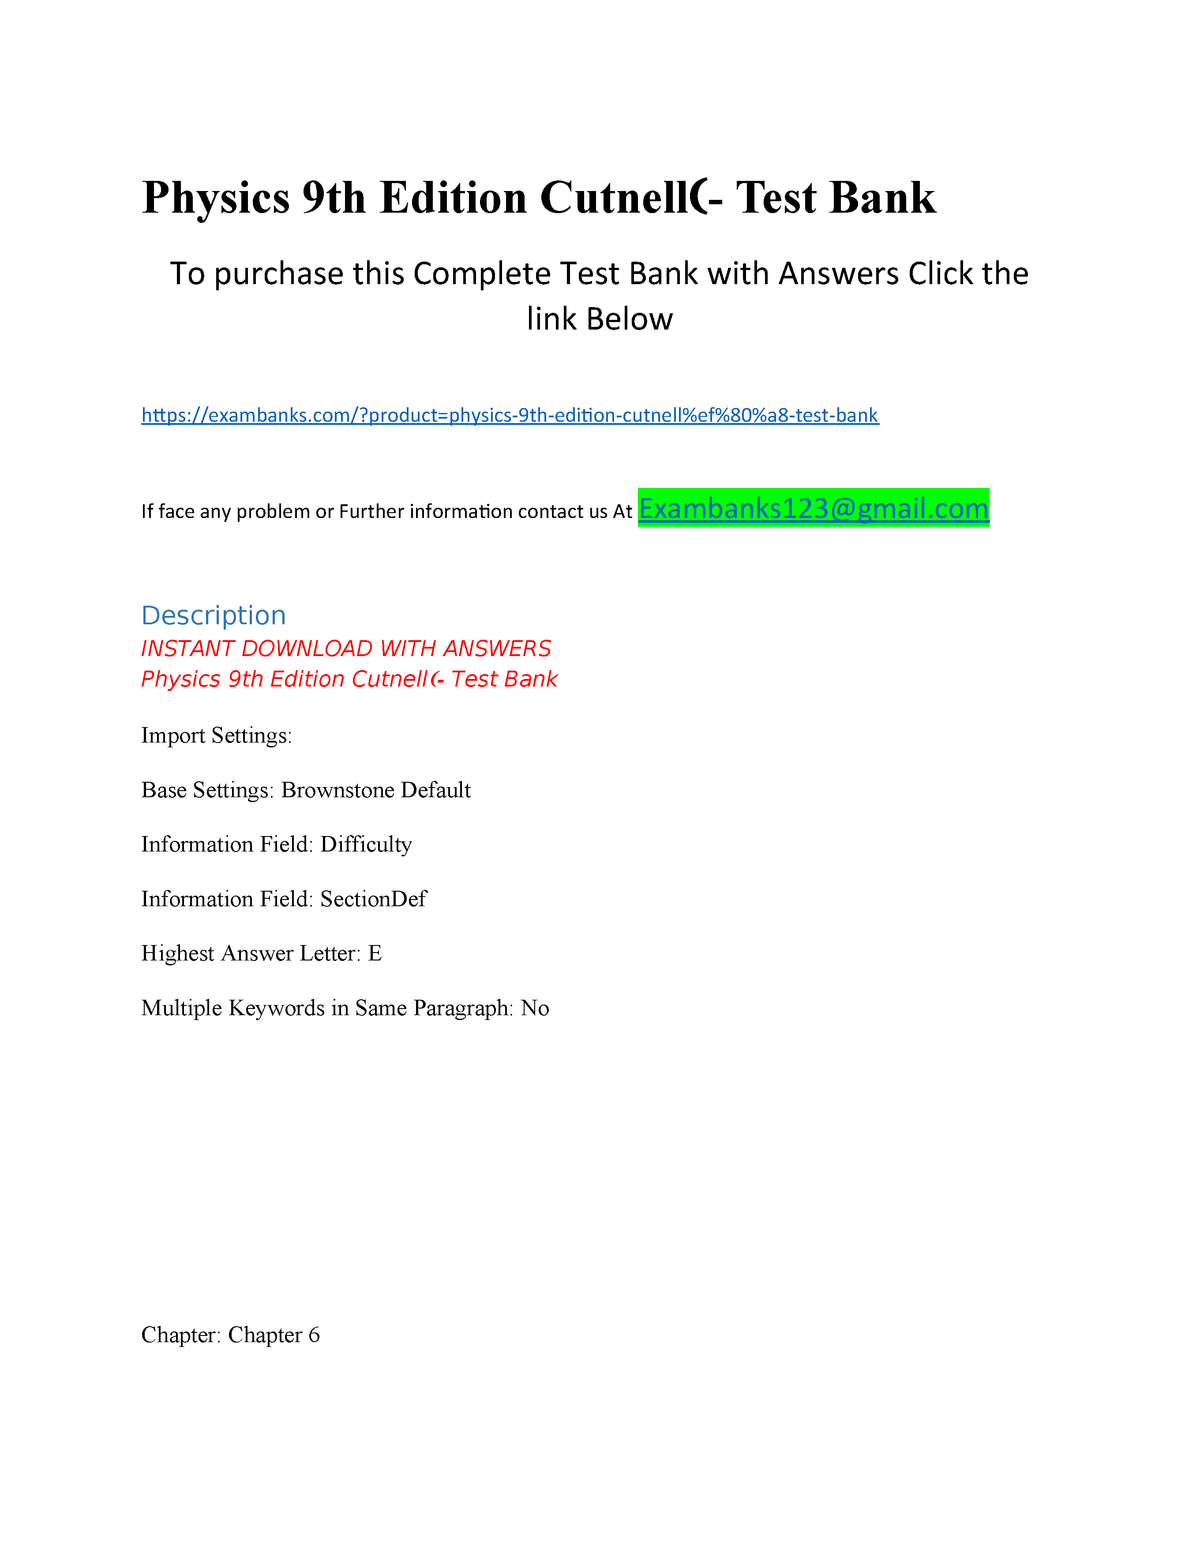 Physics 9th Edition Cutnell- Test Bank - ACC556: Financial